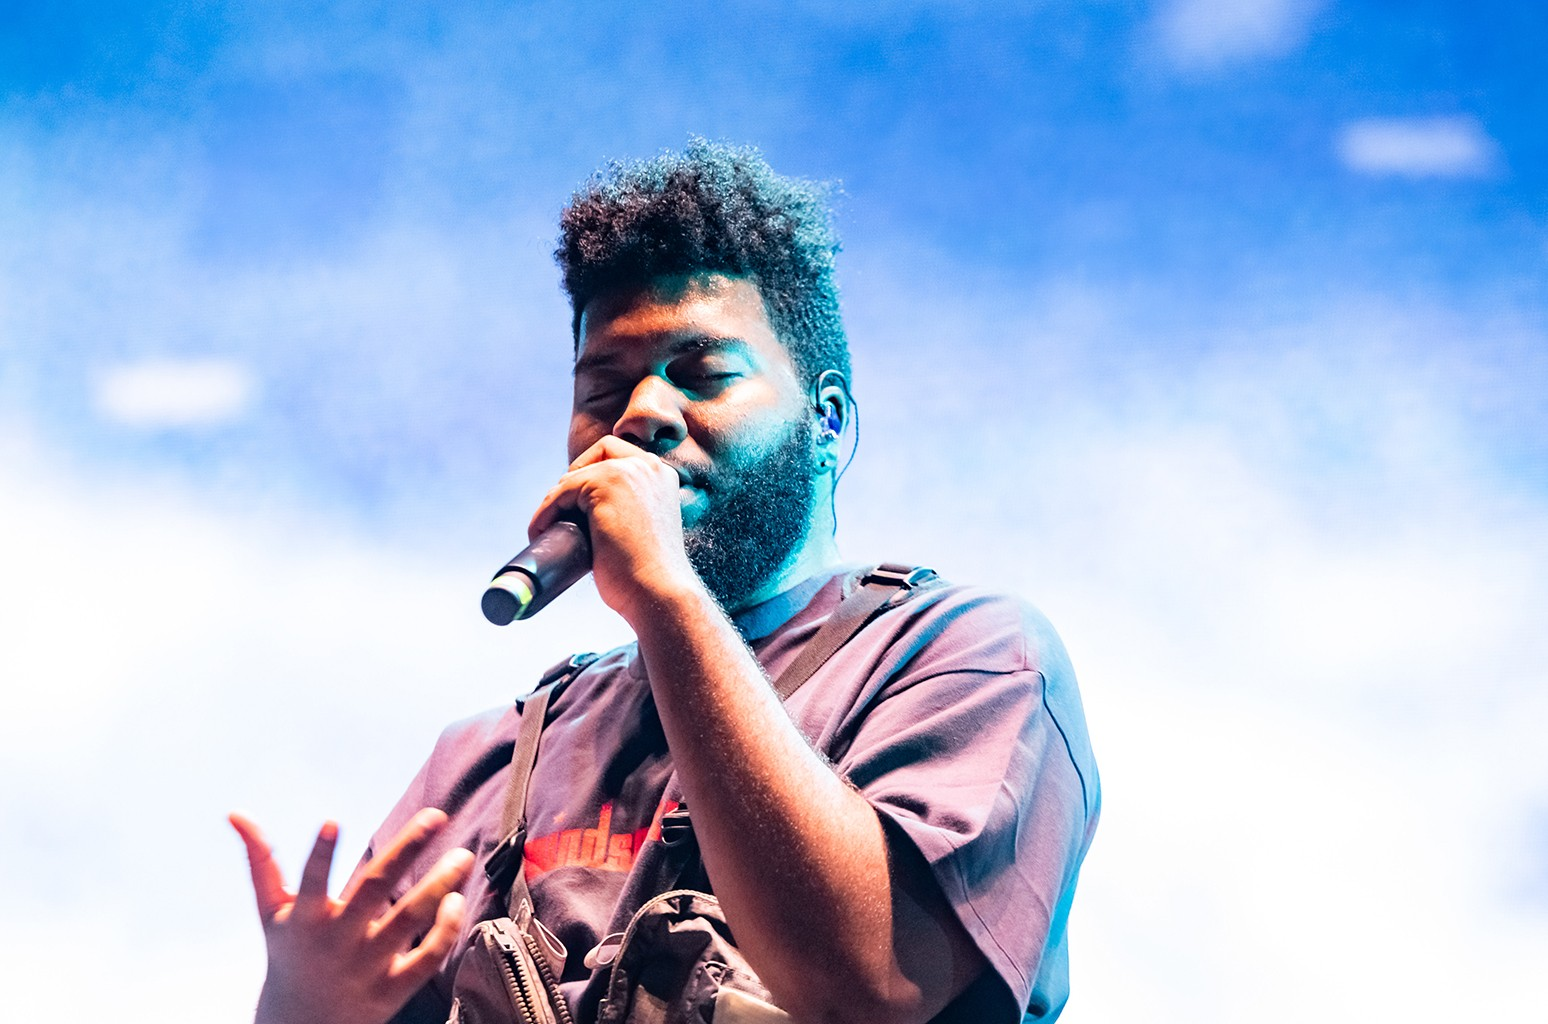 Khalid performs at Clockenflap, Nov. 11, 2018, at Central Harbourfront in Hong Kong.